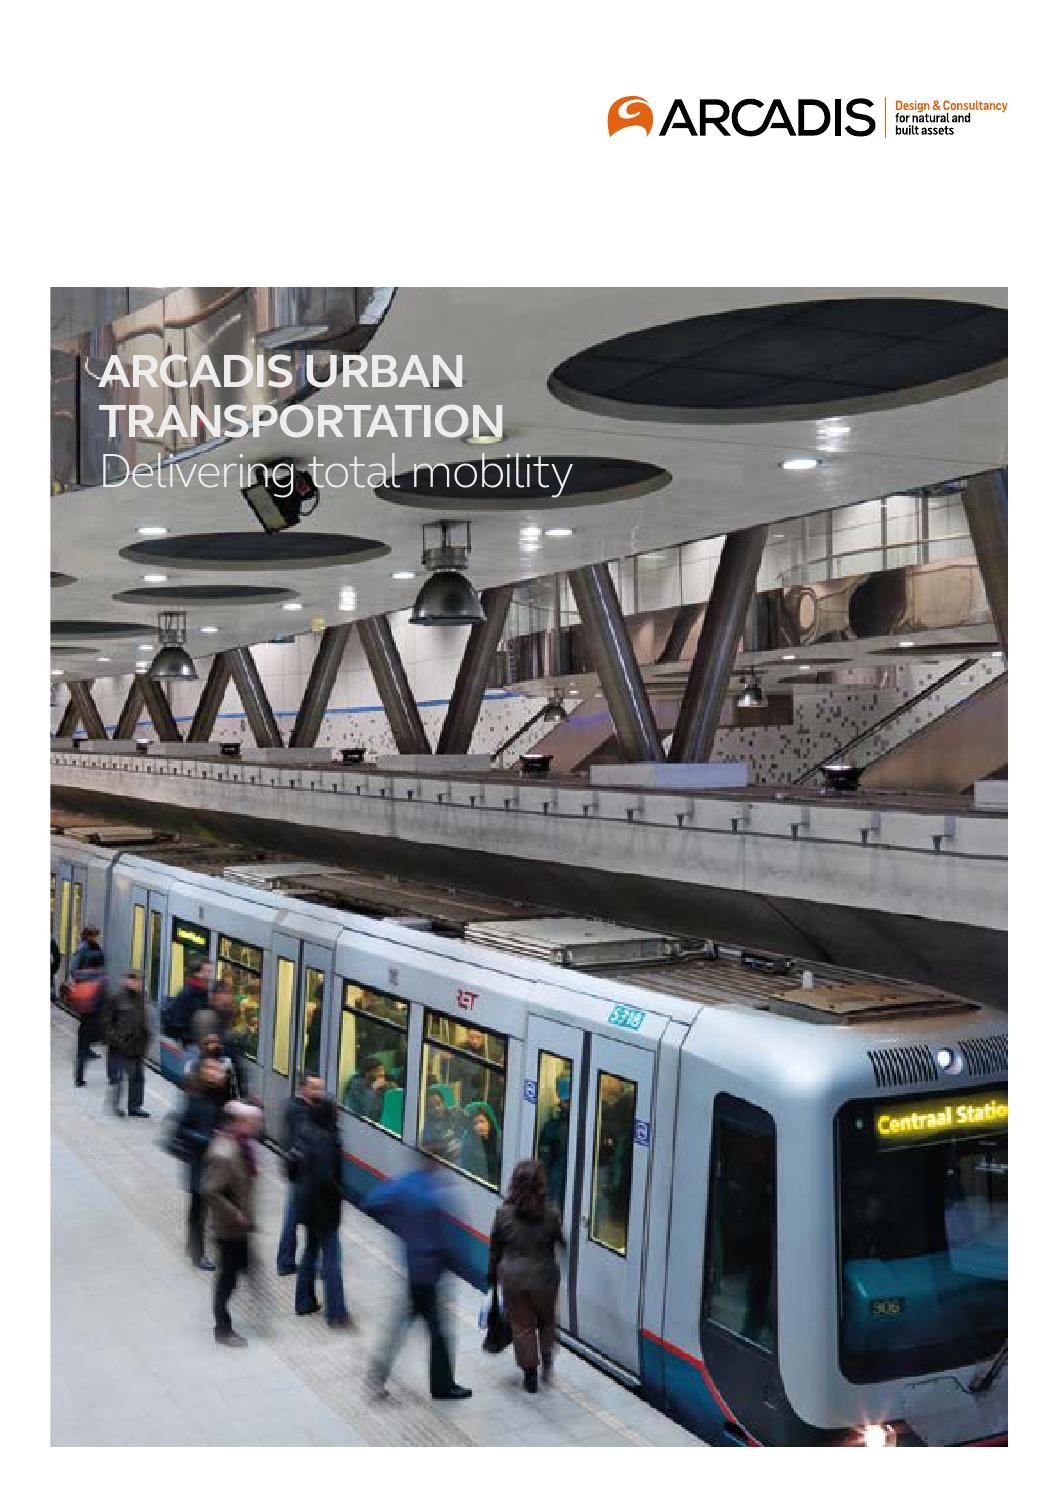 Arcadis urban transportation by arcadis uk issuu for Arcadis design and consultancy